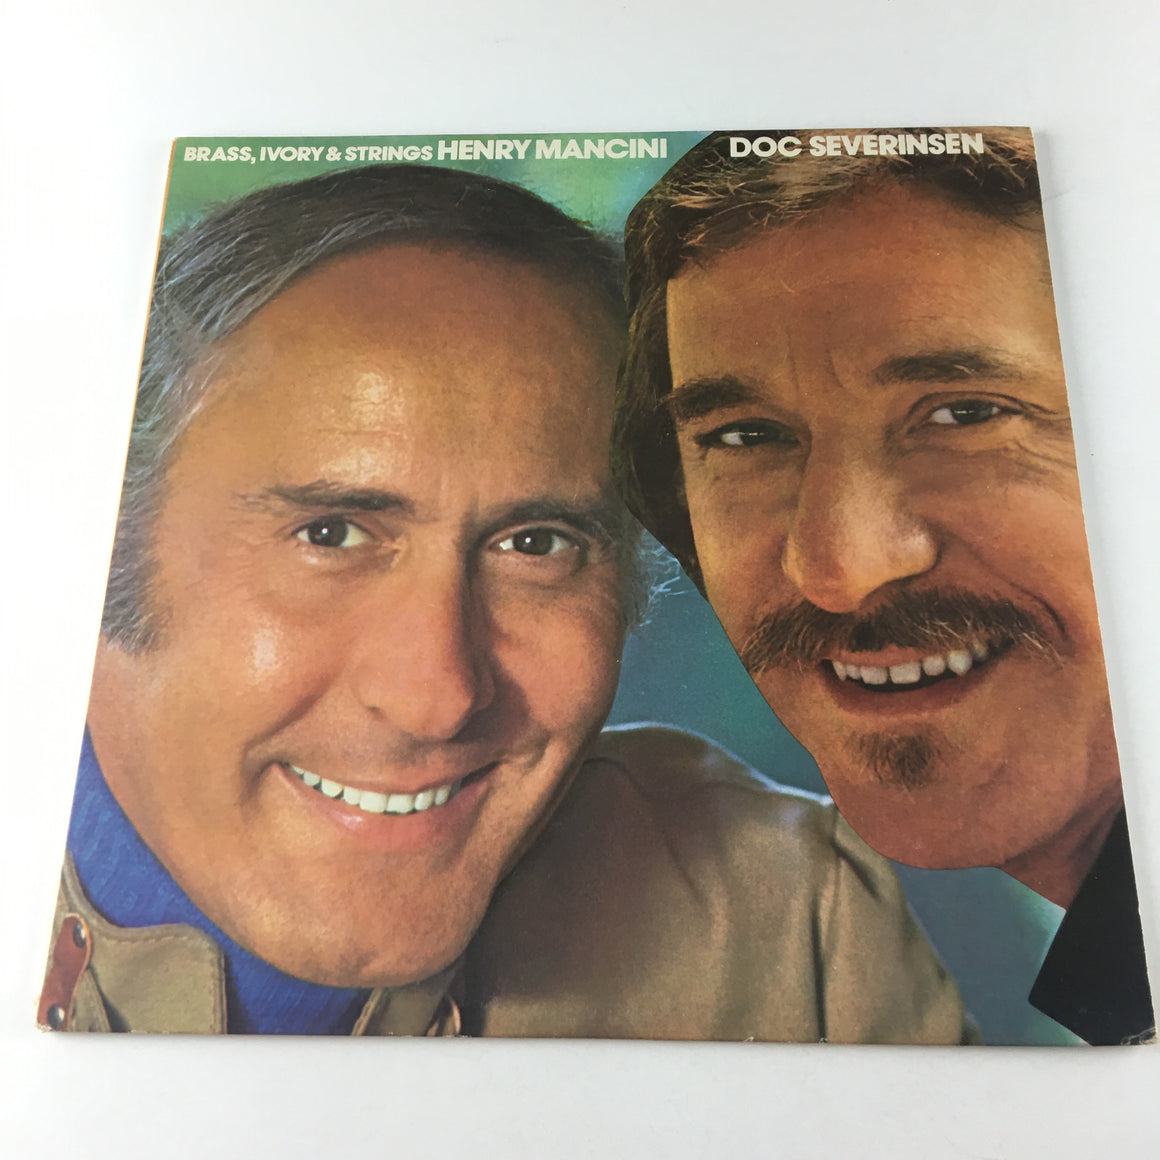 Henry Mancini And Doc Severinsen Brass, Ivory & Strings Used Vinyl LP VG+ APD1-0098